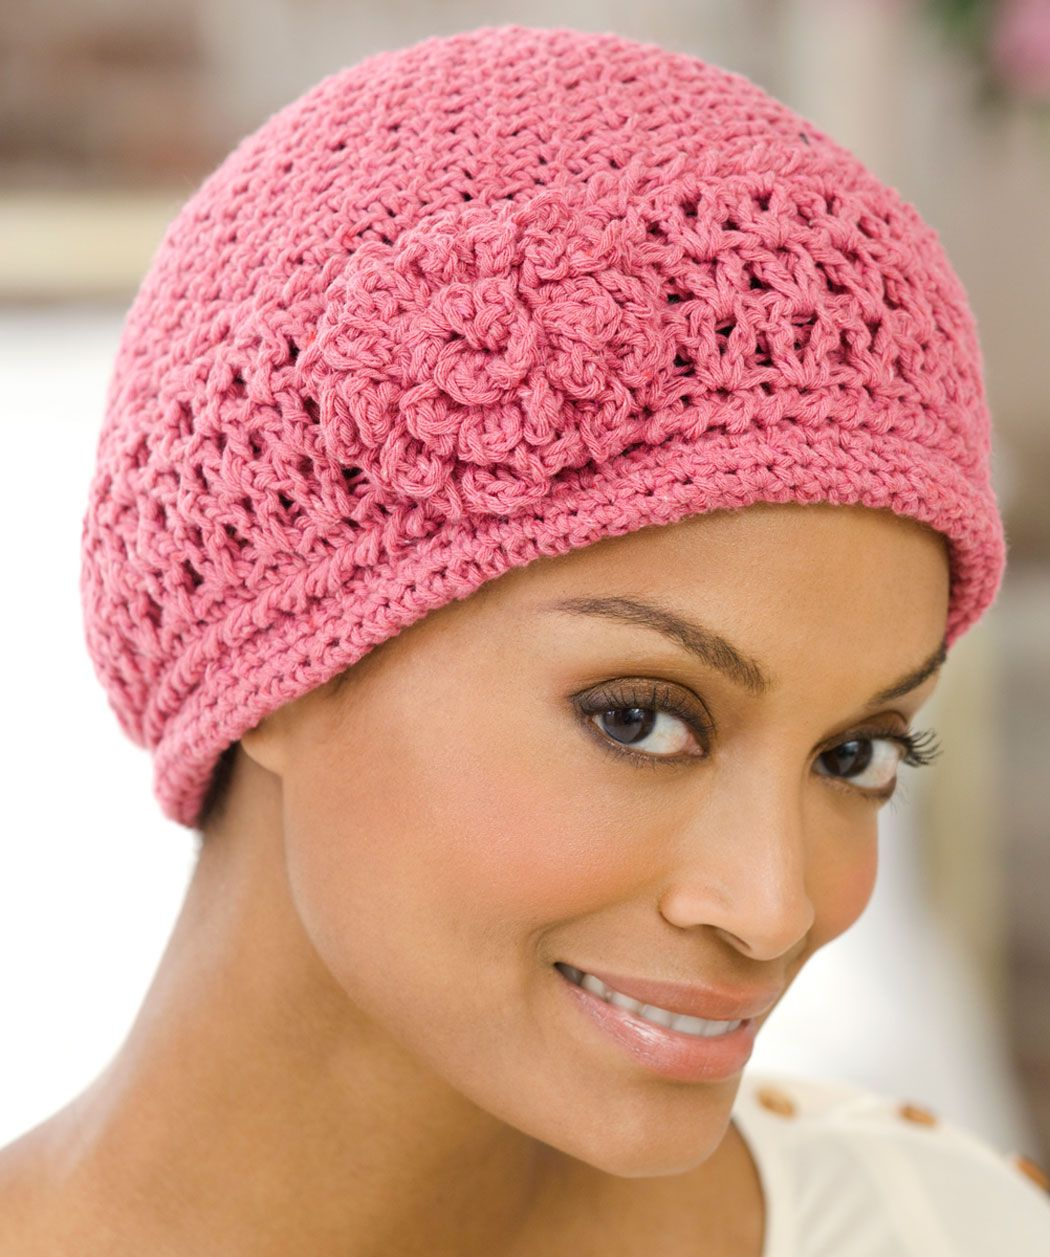 Red Heart® Chemo Cap #crochet #pattern #breastcancerawareness ...